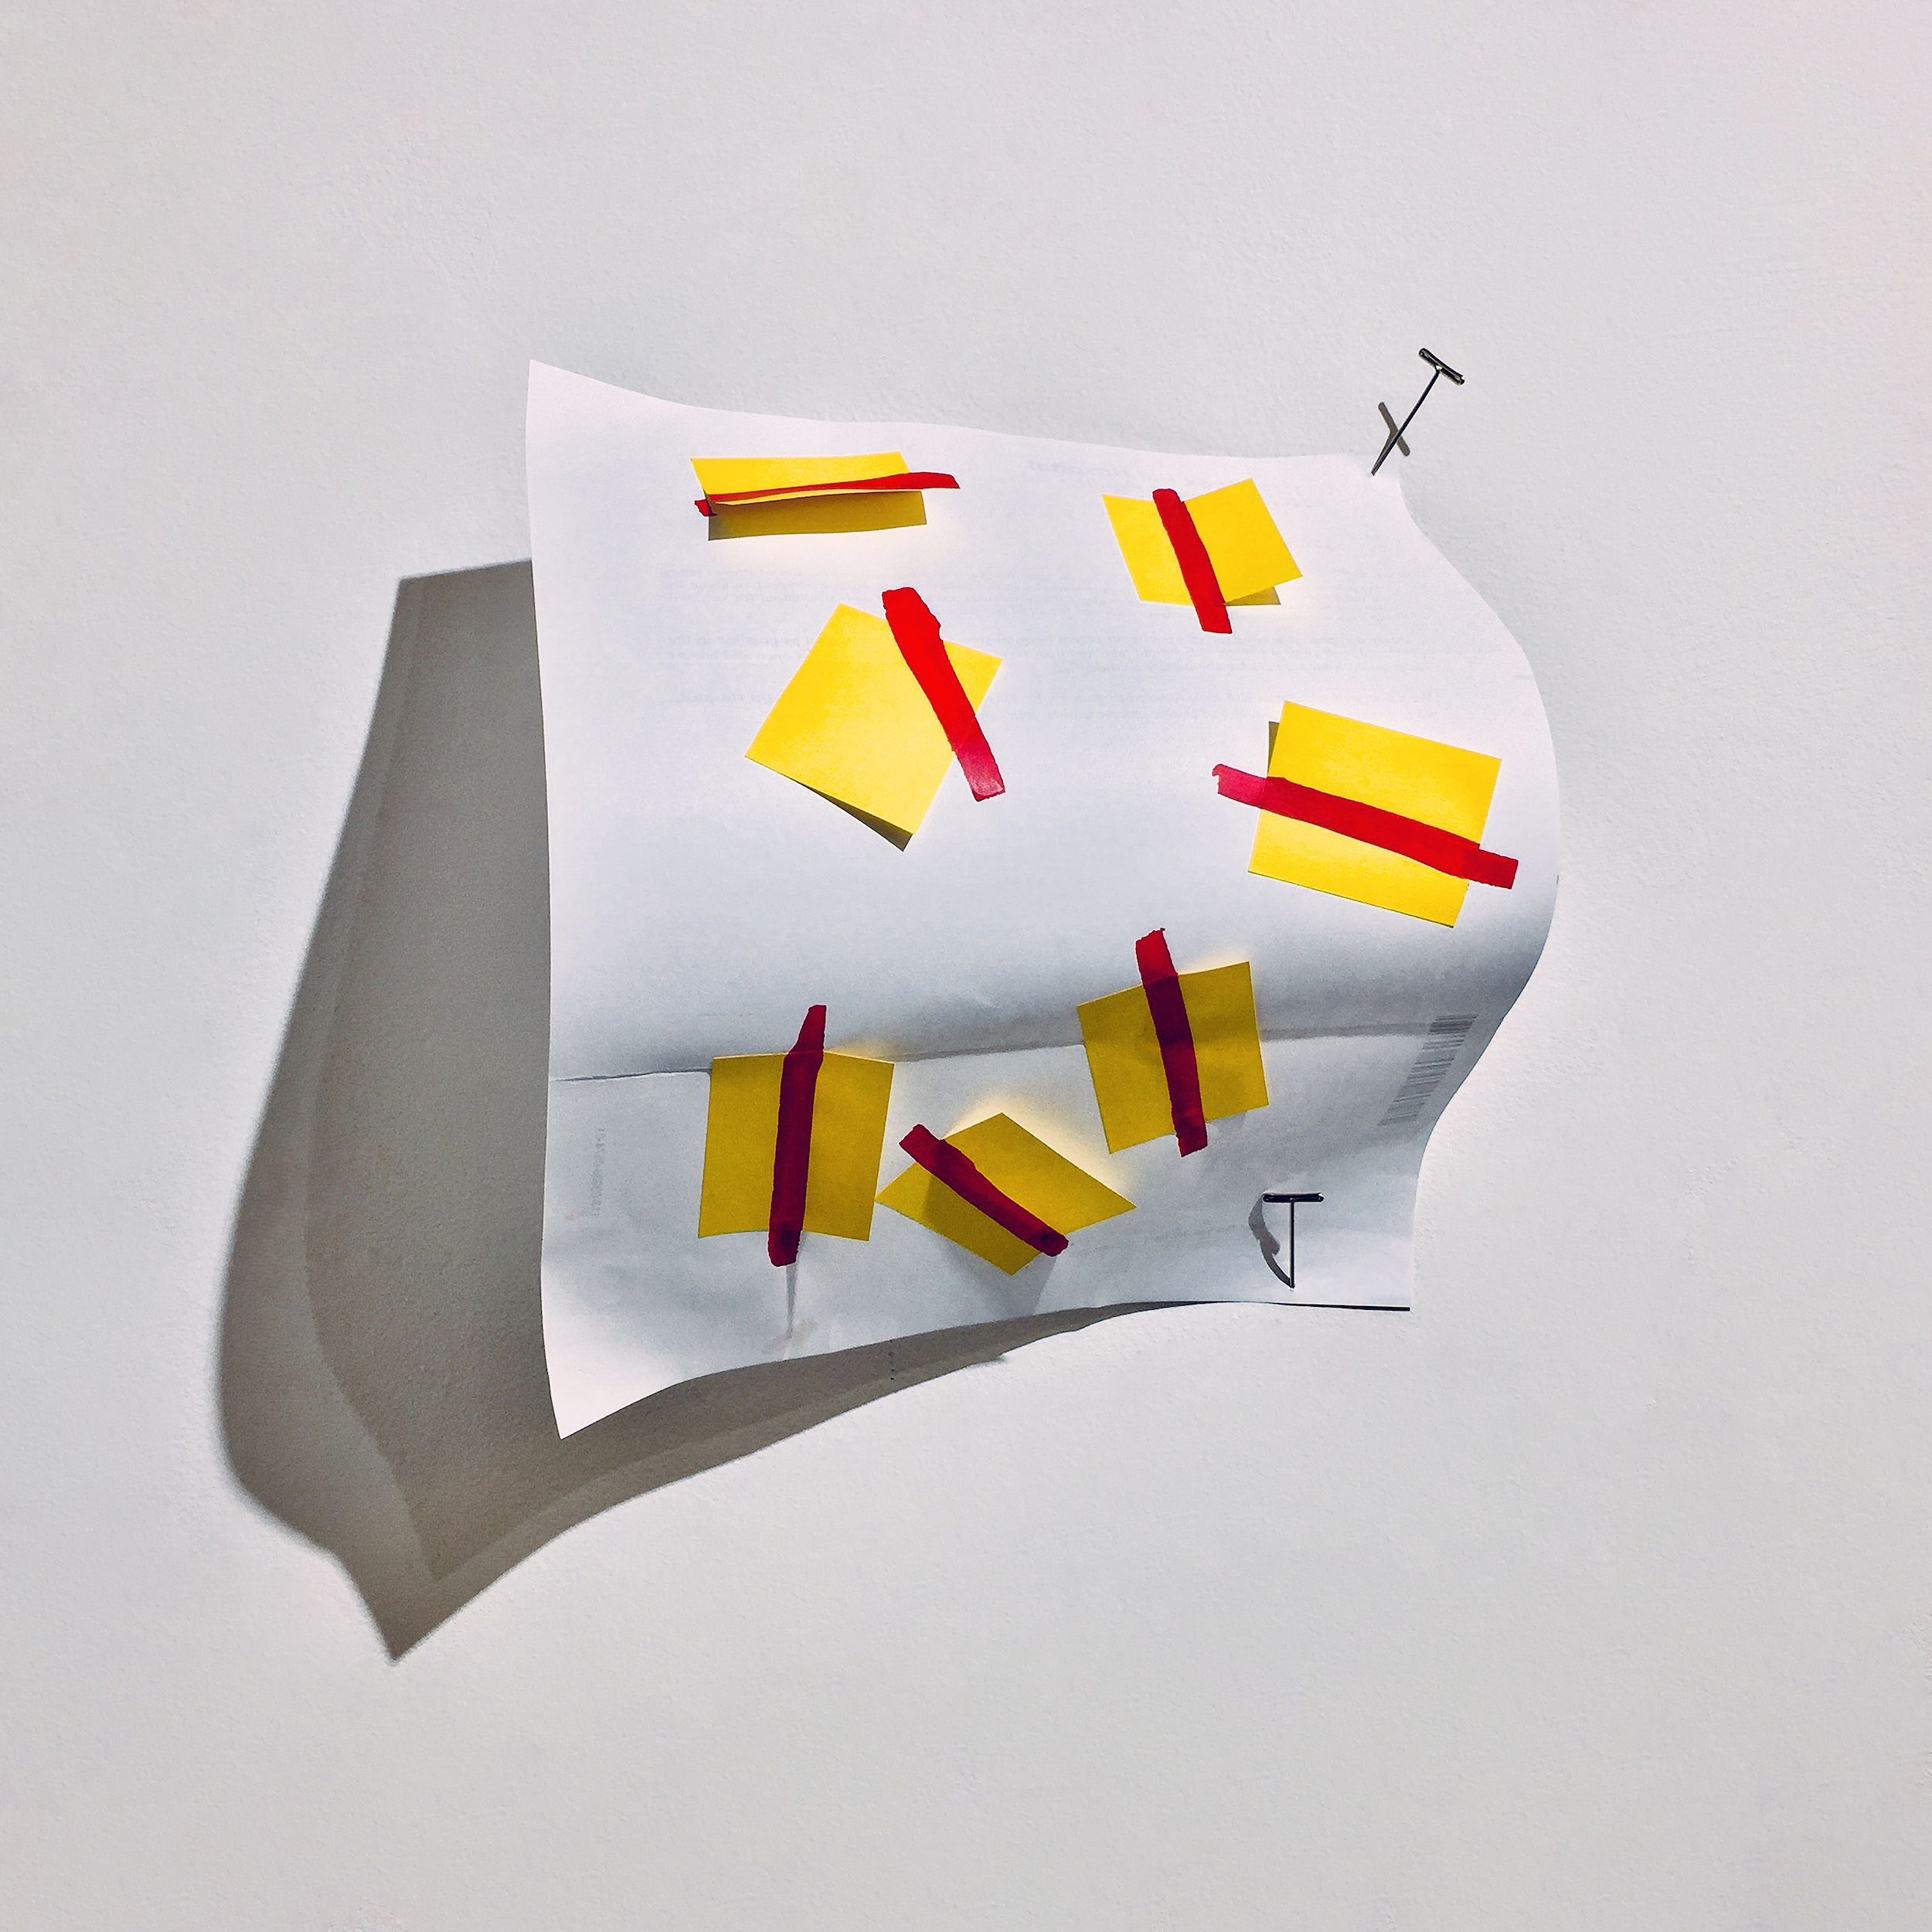 The insurance policy    Acrylic paint, Post-it, post-hospitalization patient survey letter, and T-pin  Approx. 10 1/2 x 9 x 5 inches  2018